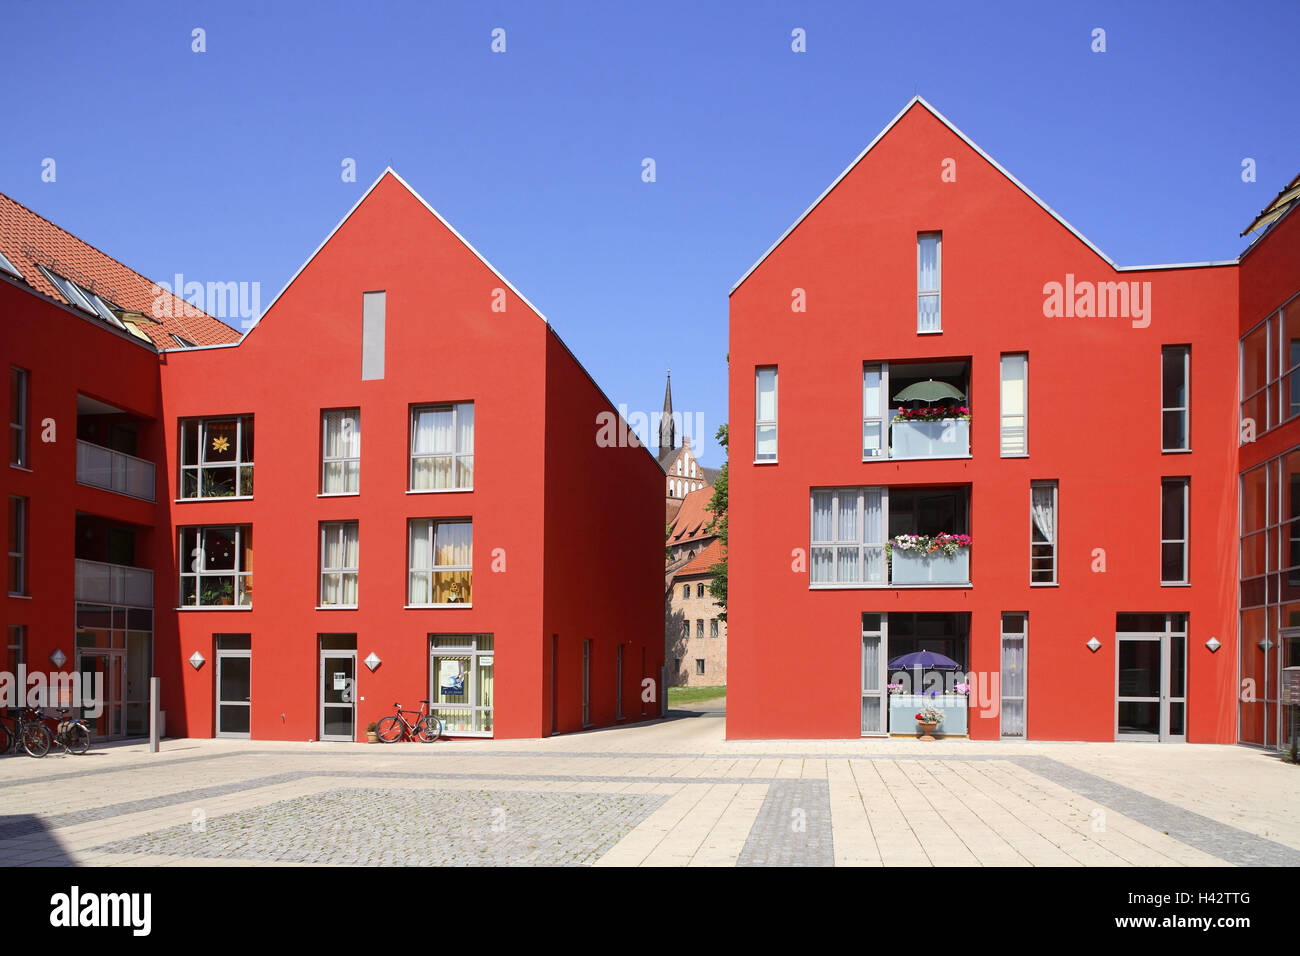 Germany, Mecklenburg-Western Pomerania, Wismar (city), building, facade, red, detail, city, home, Home, house facade, - Stock Image